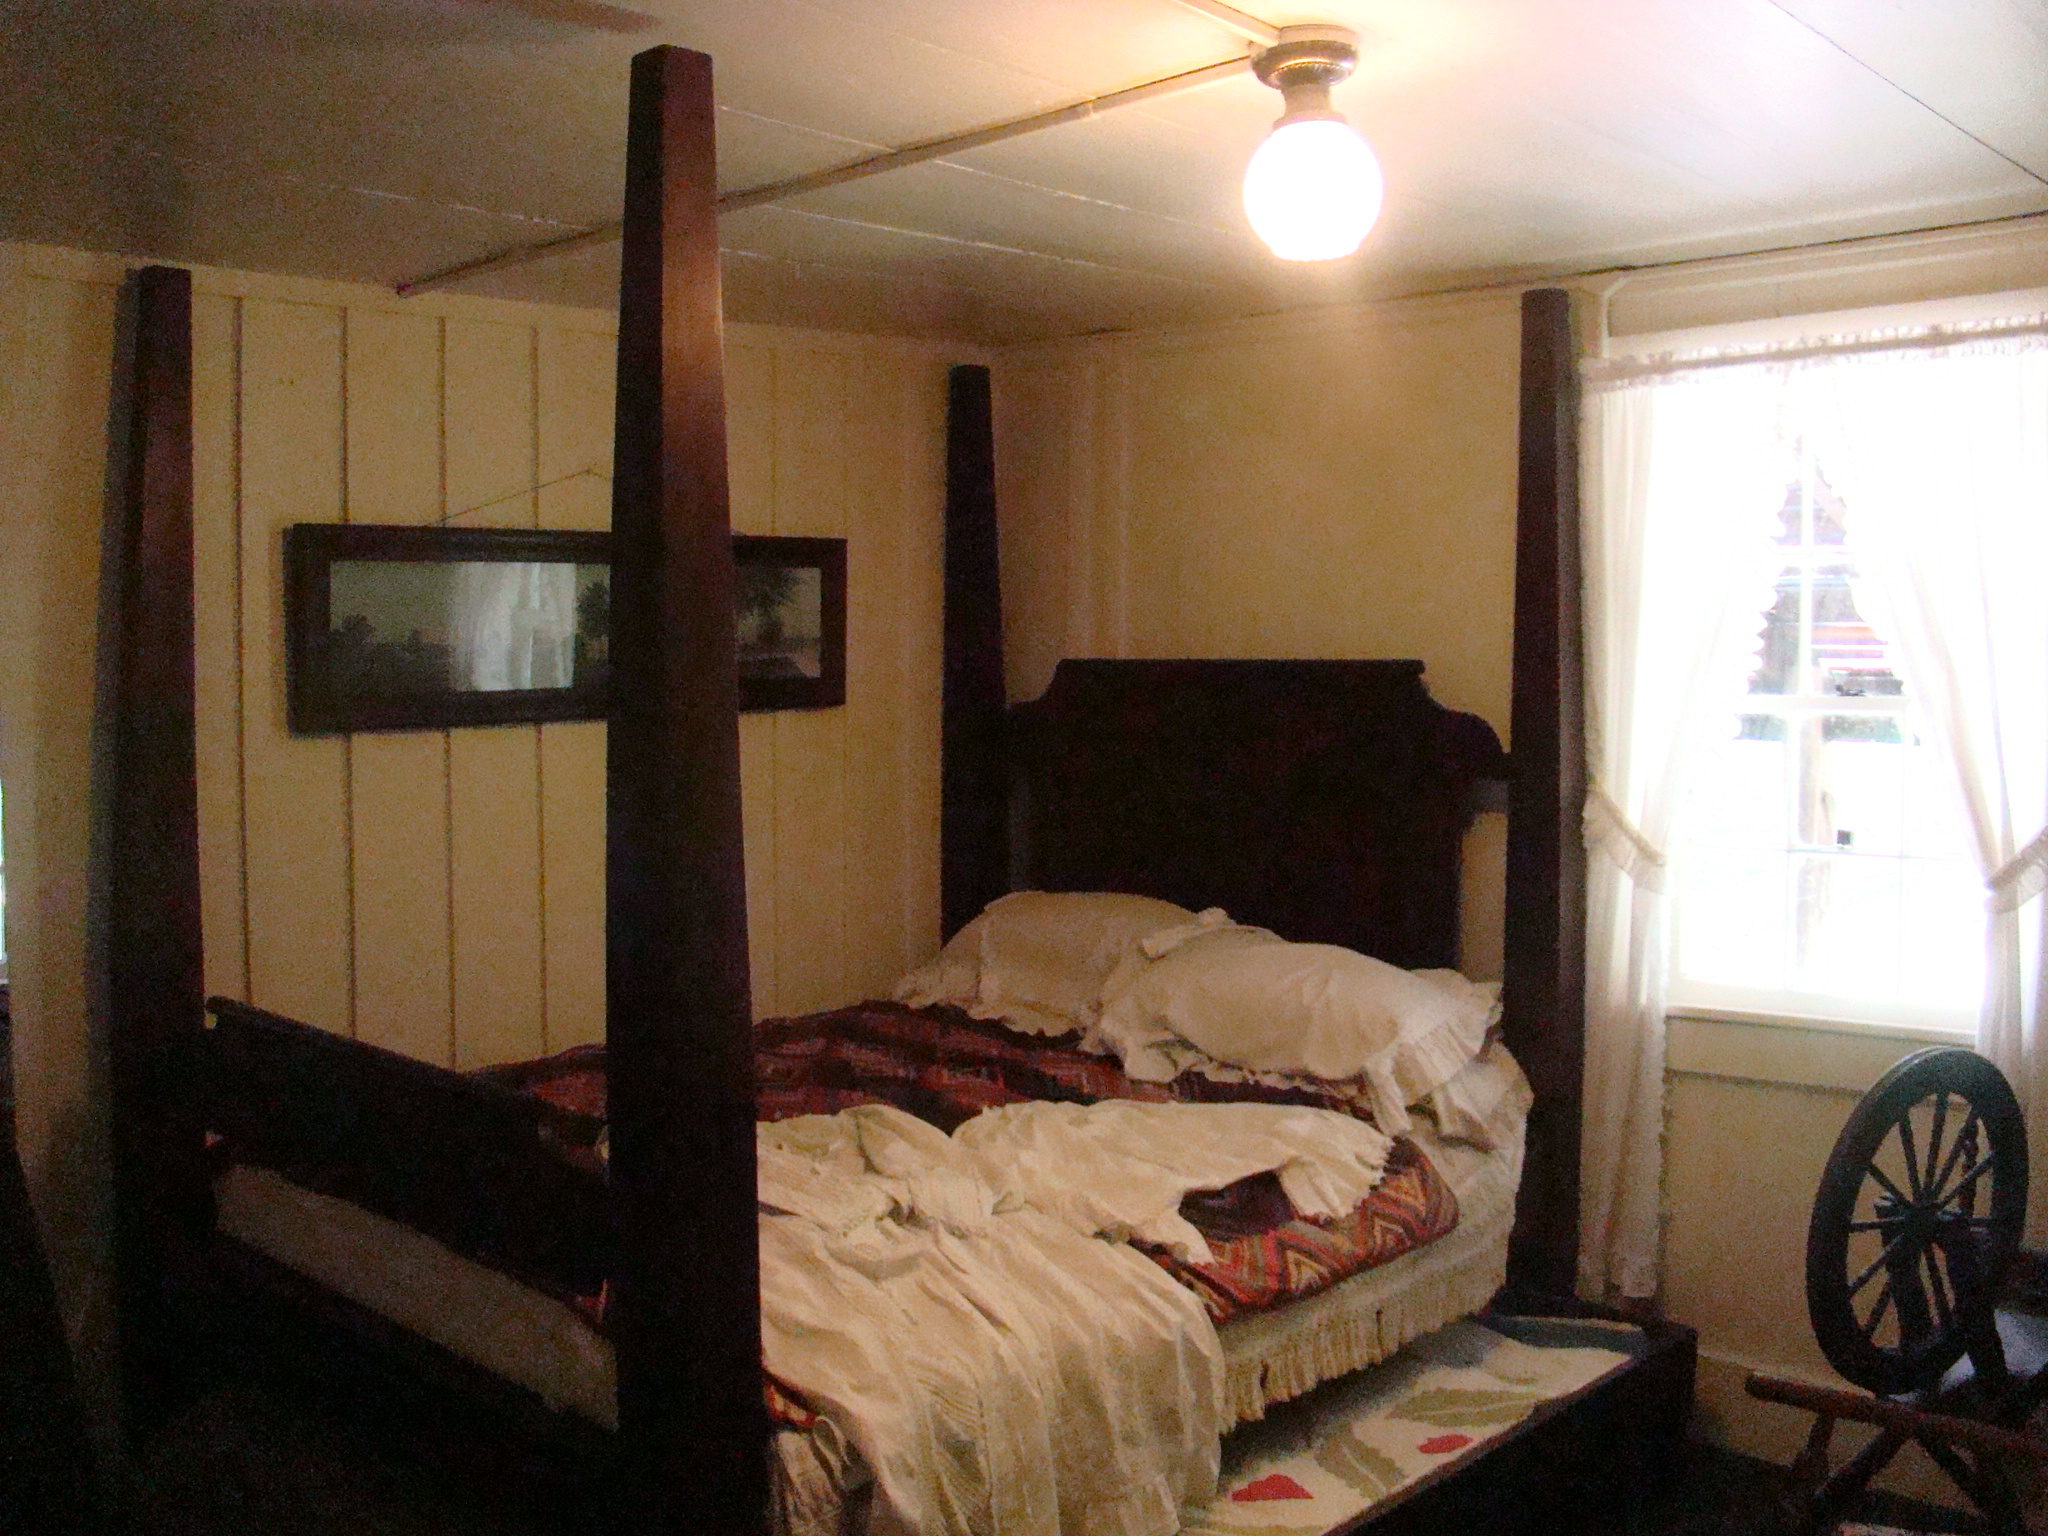 pleasant 4 poster bed frame. Four poster bed over 150 years old Point Pleasant West Virginia  Gypsy Road Trip